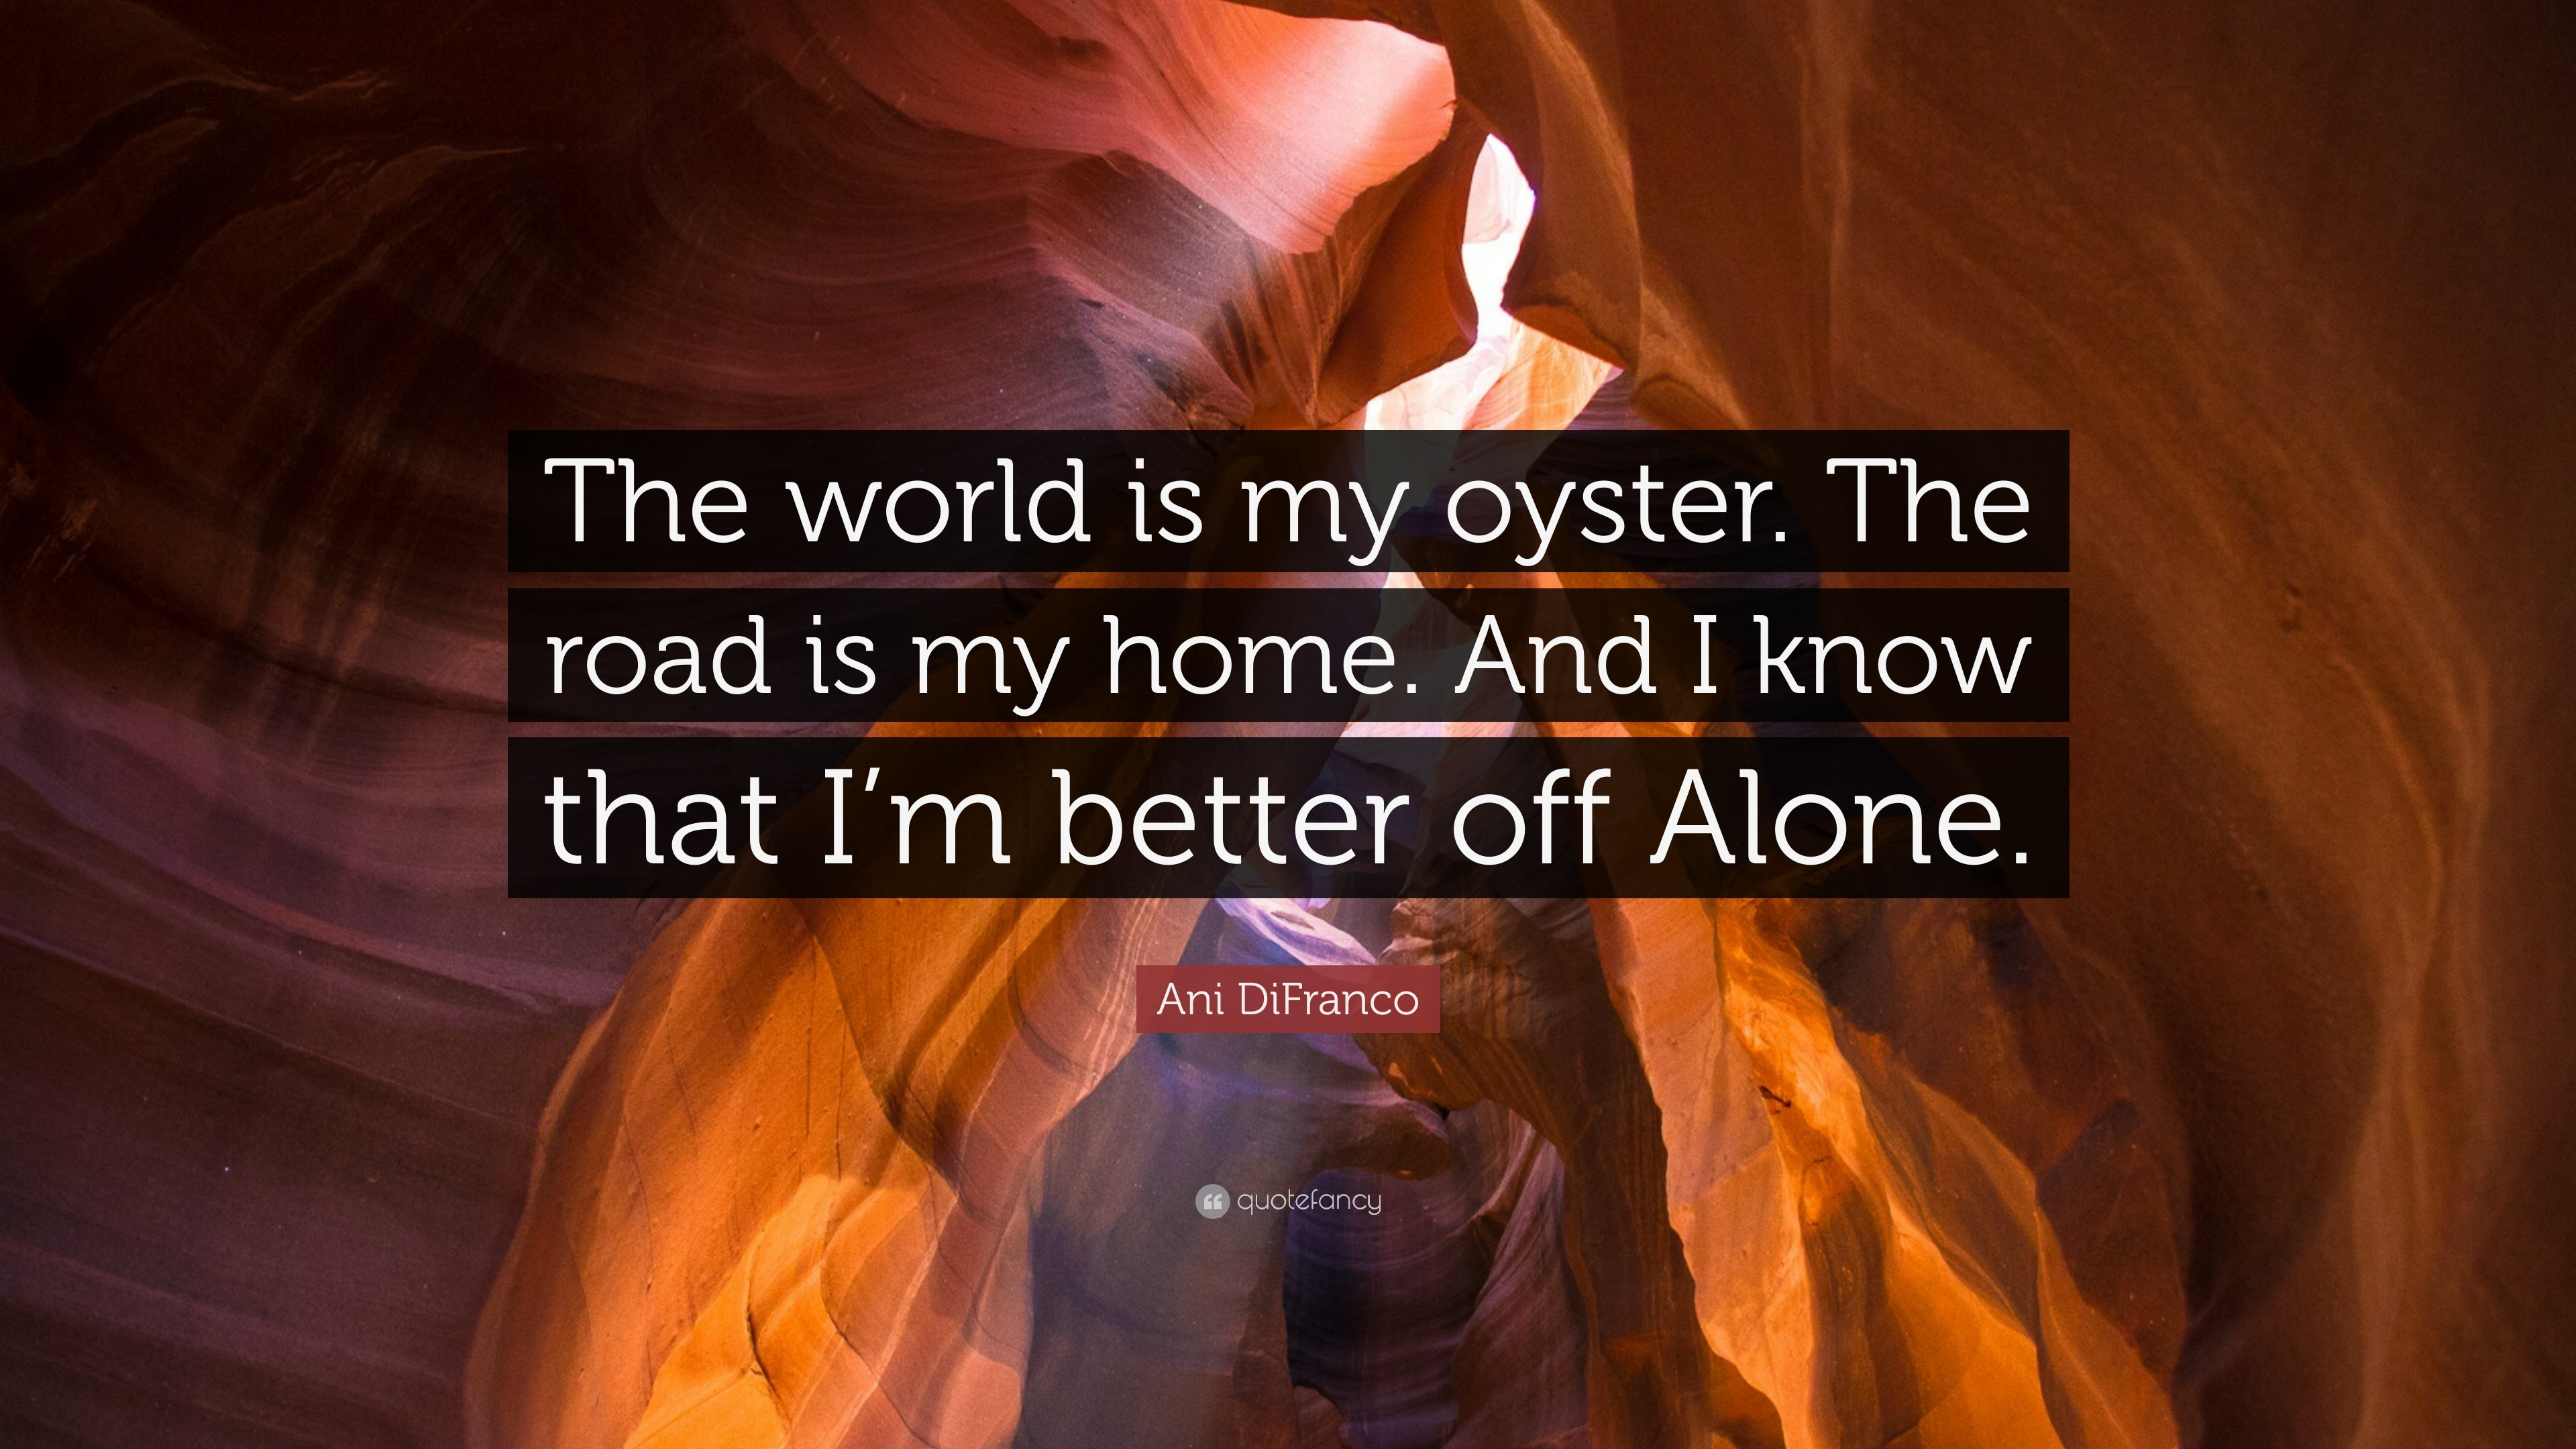 Ani Difranco Quote The World Is My Oyster The Road Is My Home And I Know That I M Better Off Alone 11 Wallpapers Quotefancy